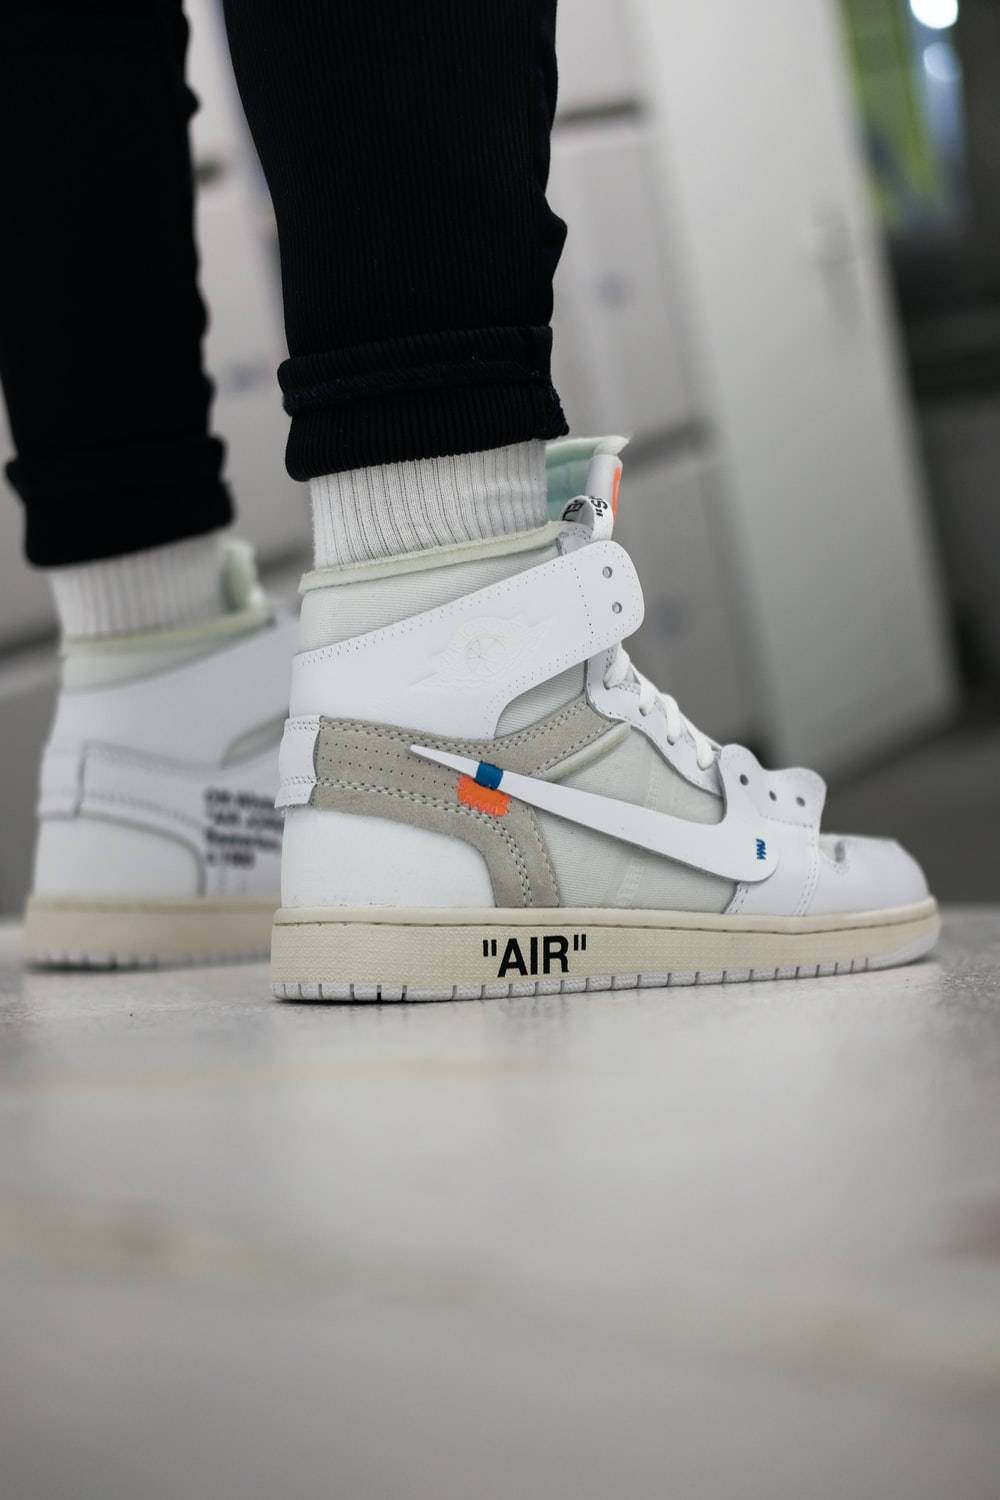 person wearing Nike x Off-white shoe